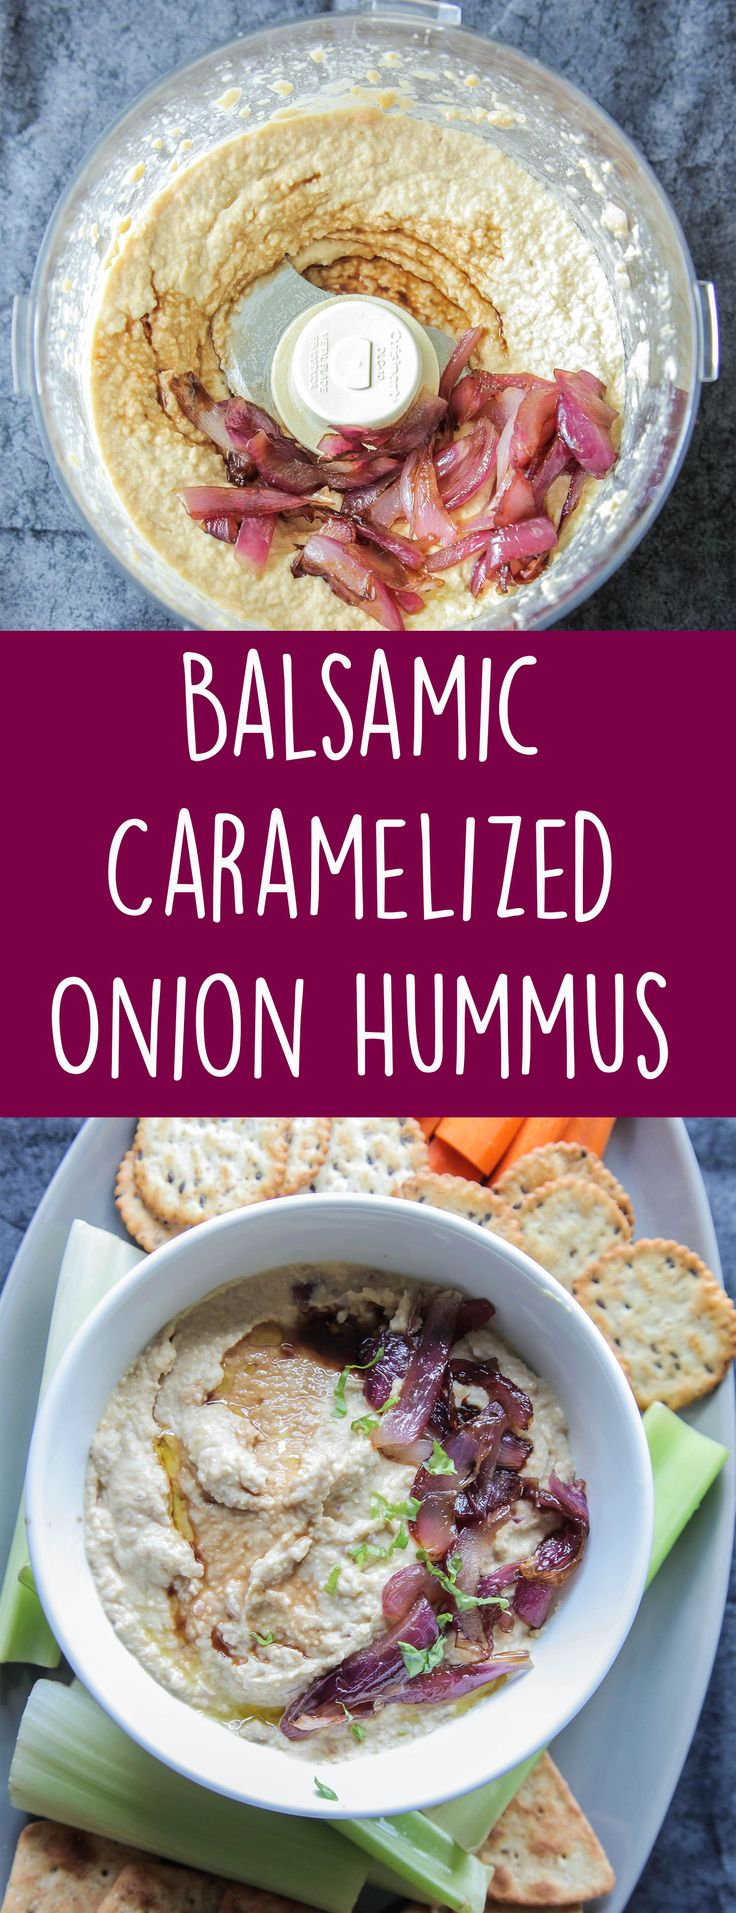 Balsamic Caramelized Onion Hummus (Vegan + Gluten Free) - A creamy flavorful hummus that's loaded with balsamic vinegar and caramelized onions. Perfect for dipping veggies, crackers, or using in sandwiches. #vegan #plantbased #hummus #caramelizedonion #appetizer #dips #onions #easyrecipe #dairyfree #glutenfree